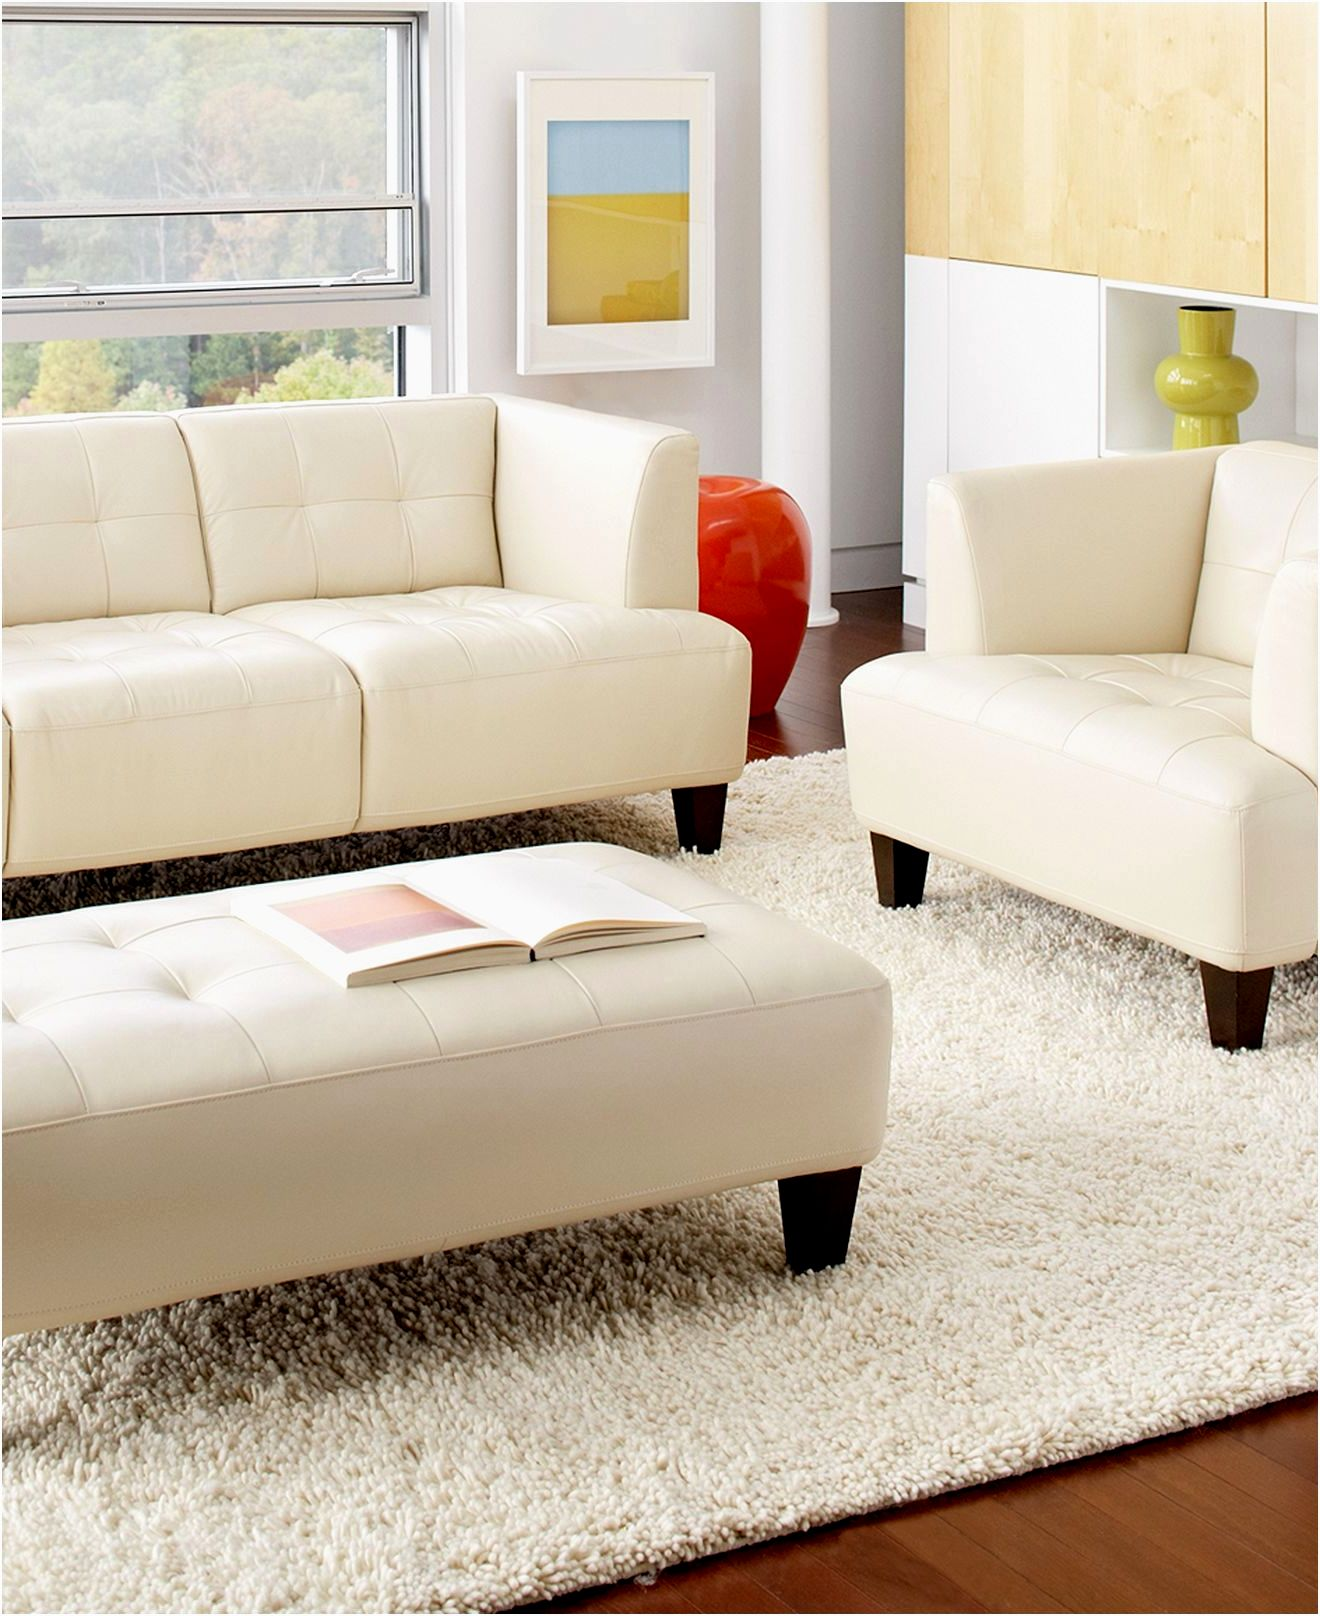 fantastic milan leather sofa picture-Contemporary Milan Leather sofa Layout